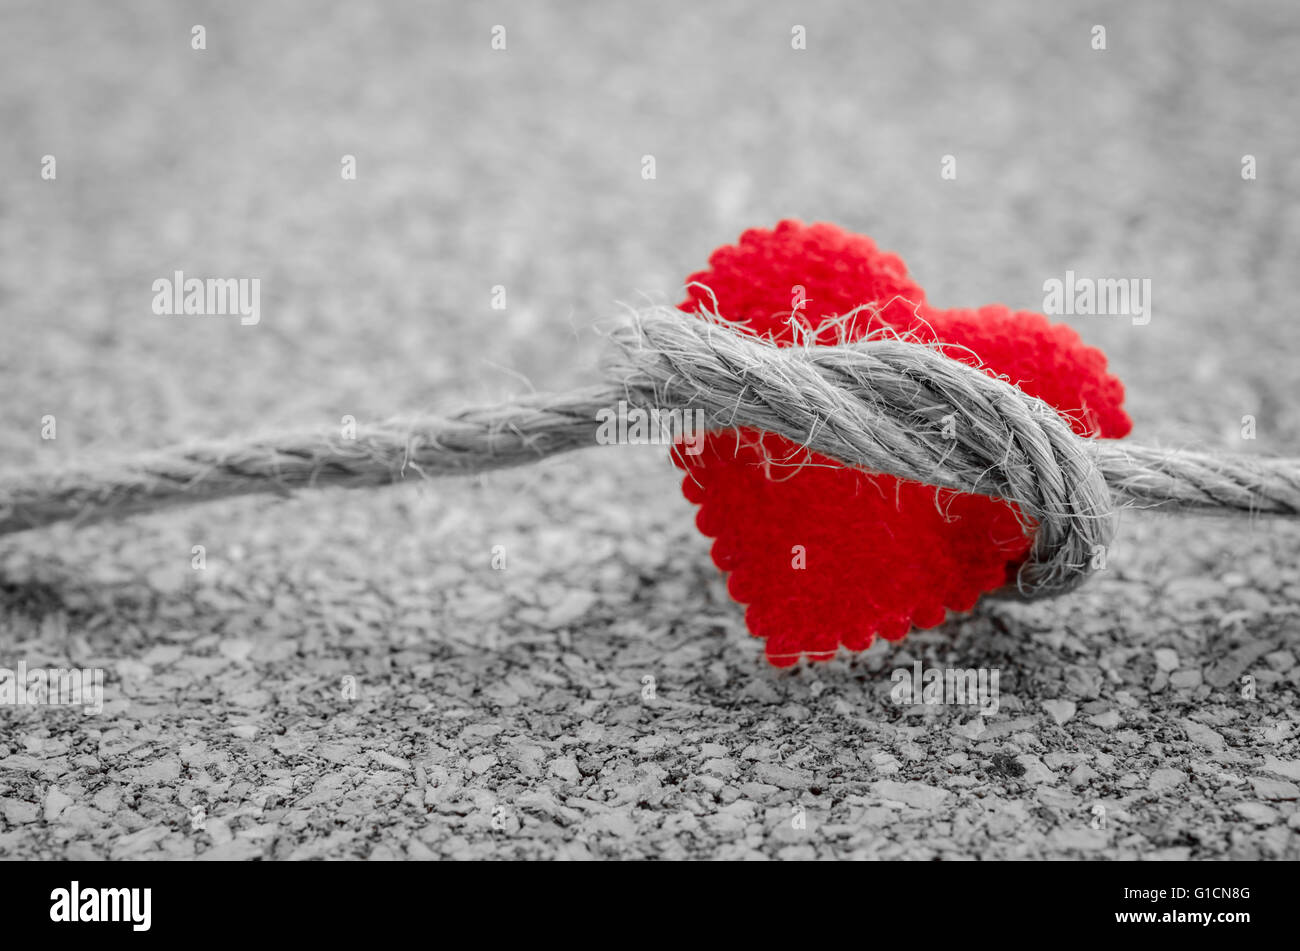 Red heart with a bundle rope on a black and white color